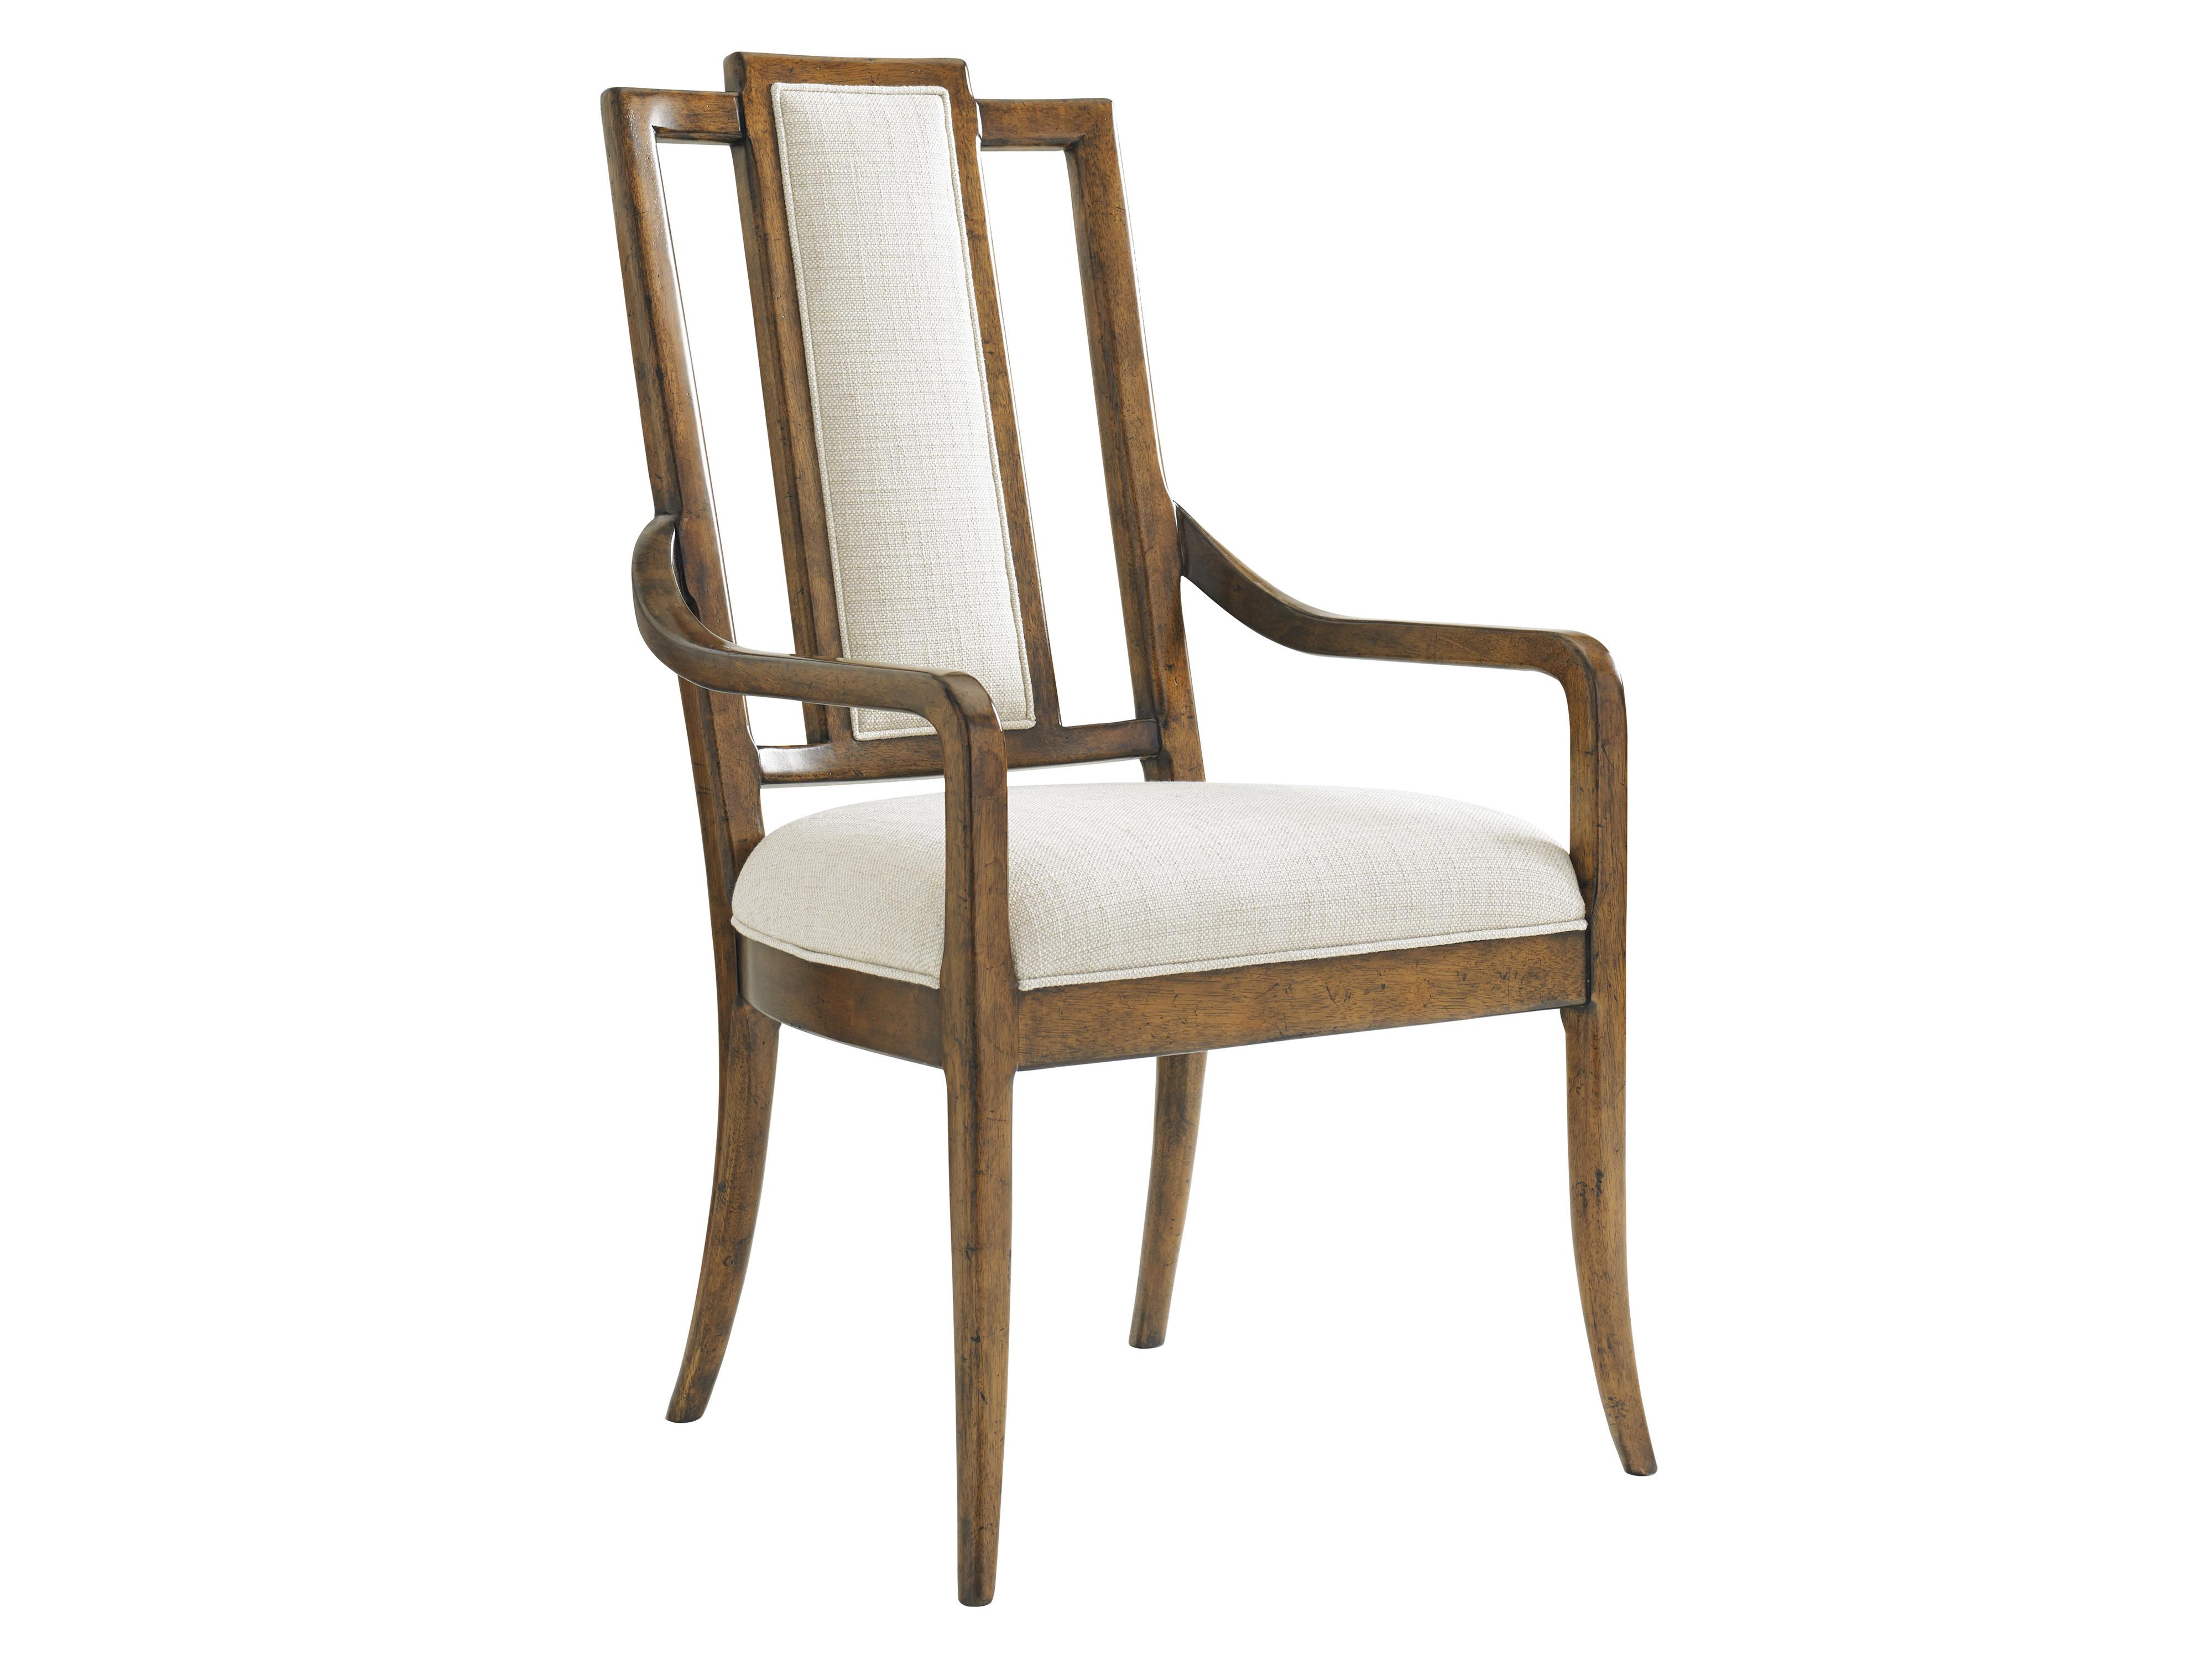 Bali Hai Quickship St. Bart's Arm Chair by Tommy Bahama Home at Baer's Furniture